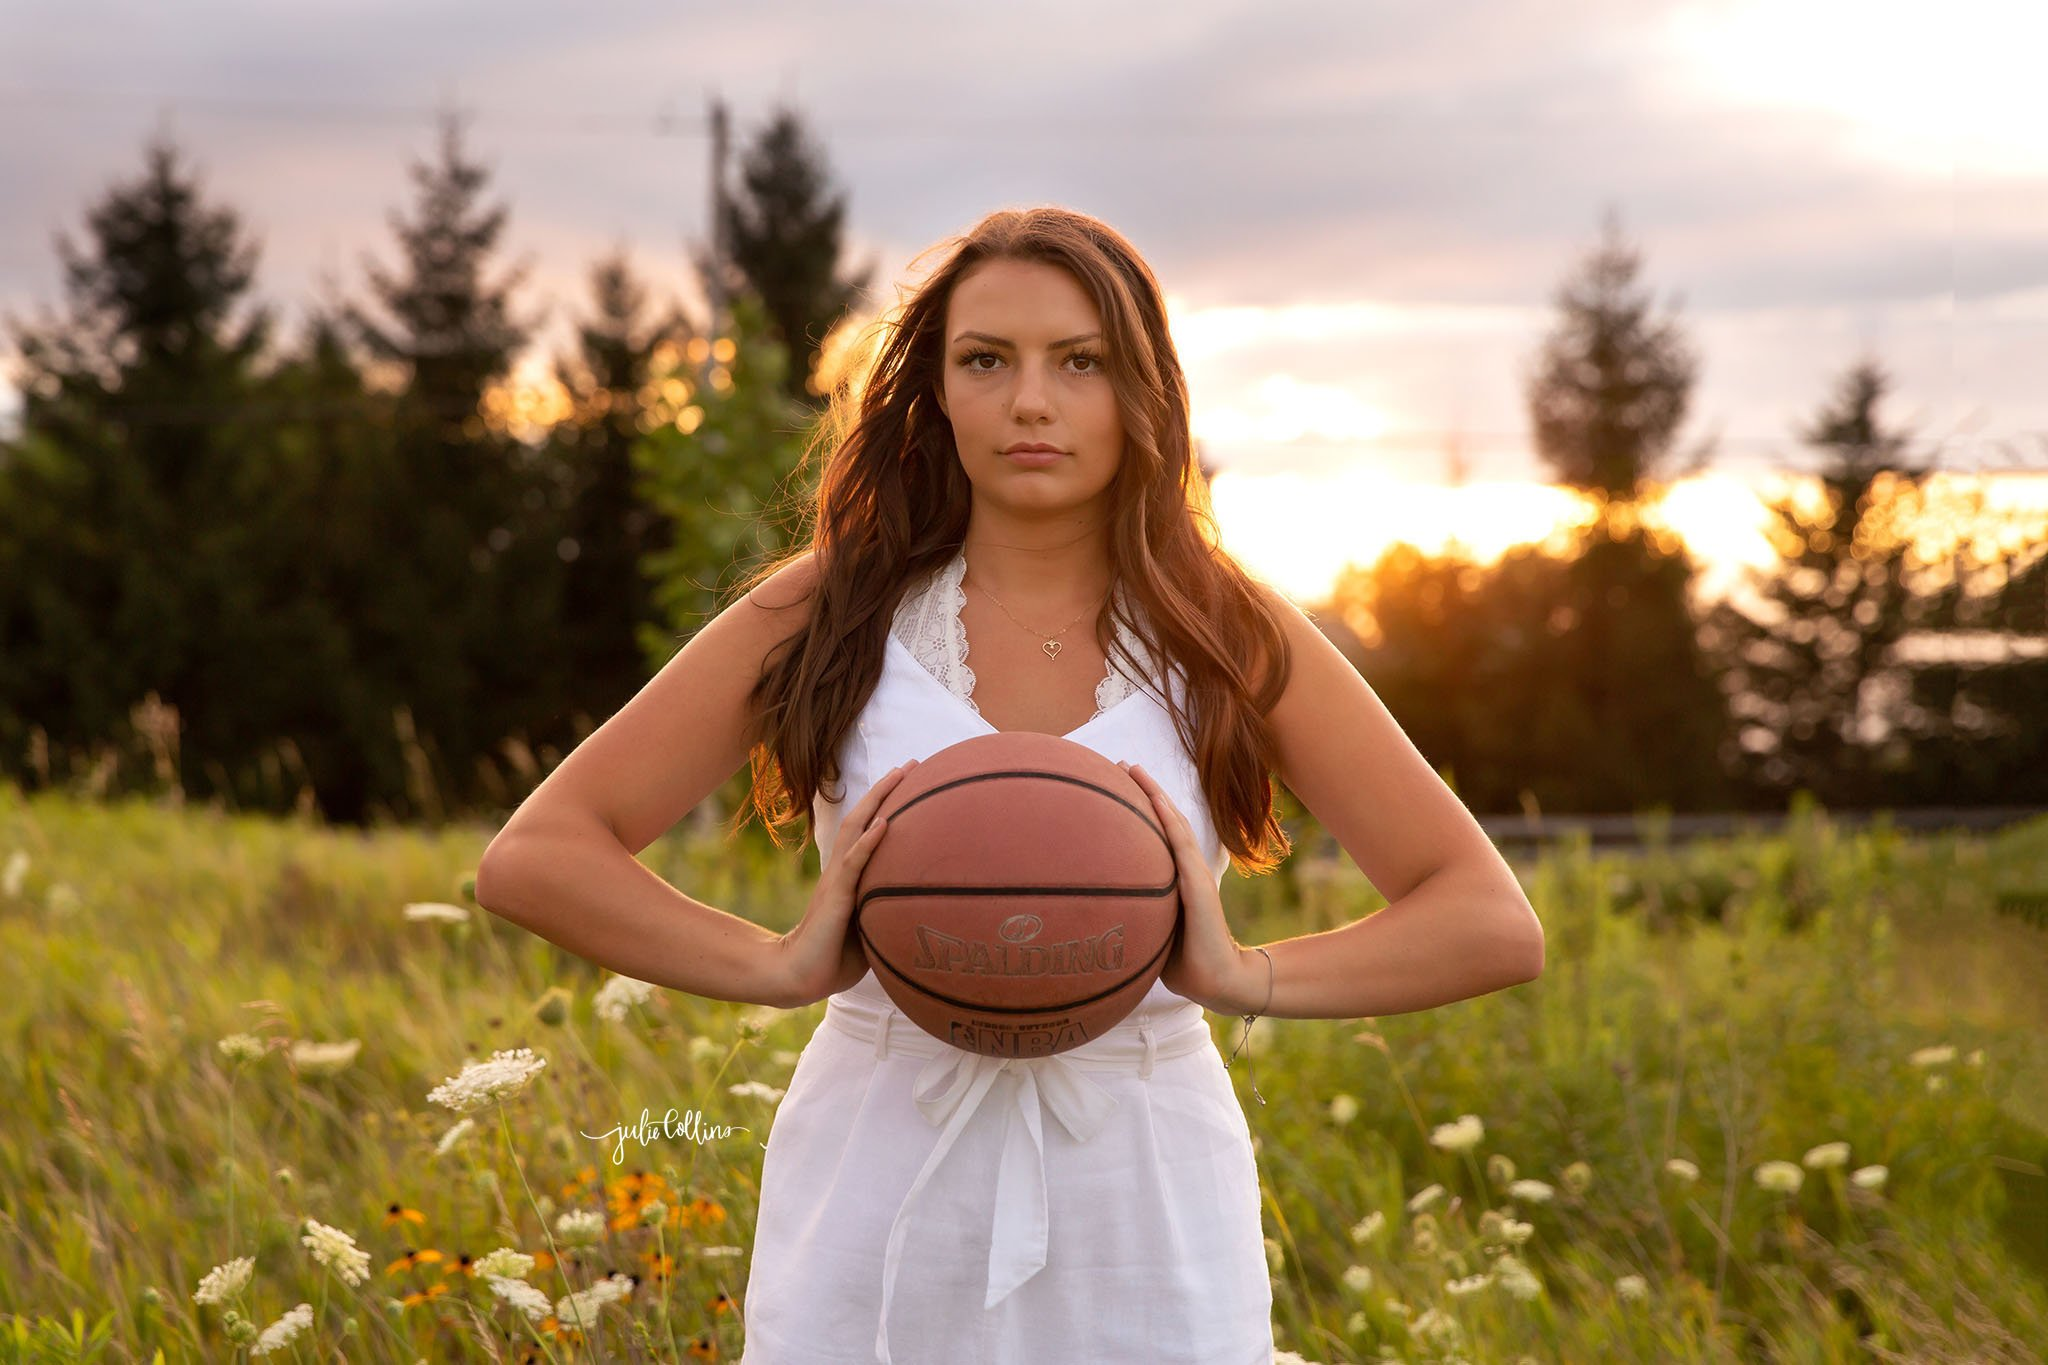 High school senior in white jumper looking at camera with basketball in field in Delafield, Wisconsin